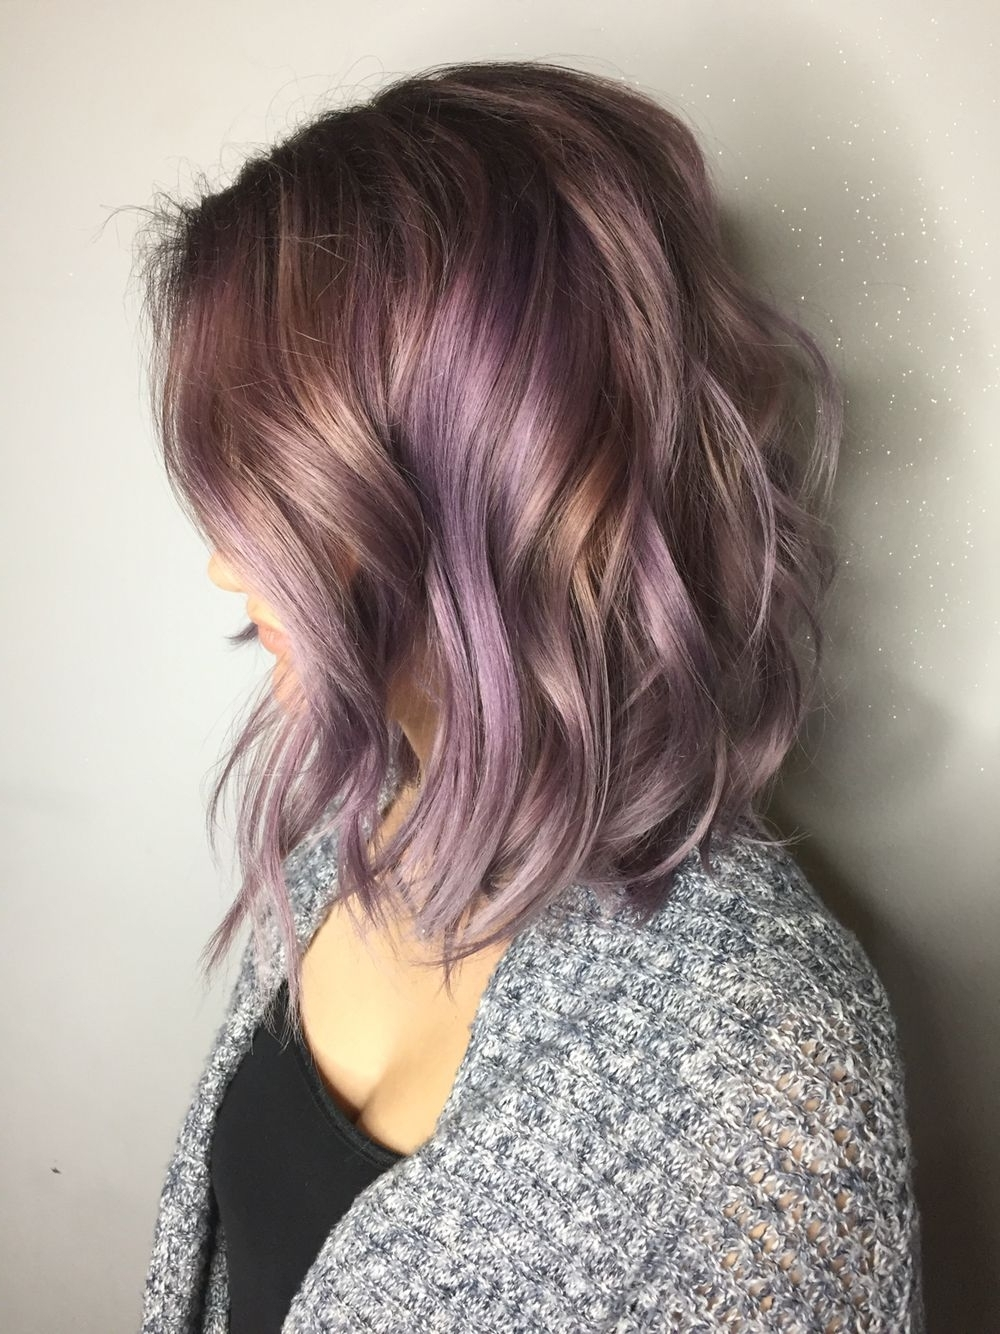 Magical Hair Colors (View 13 of 20)